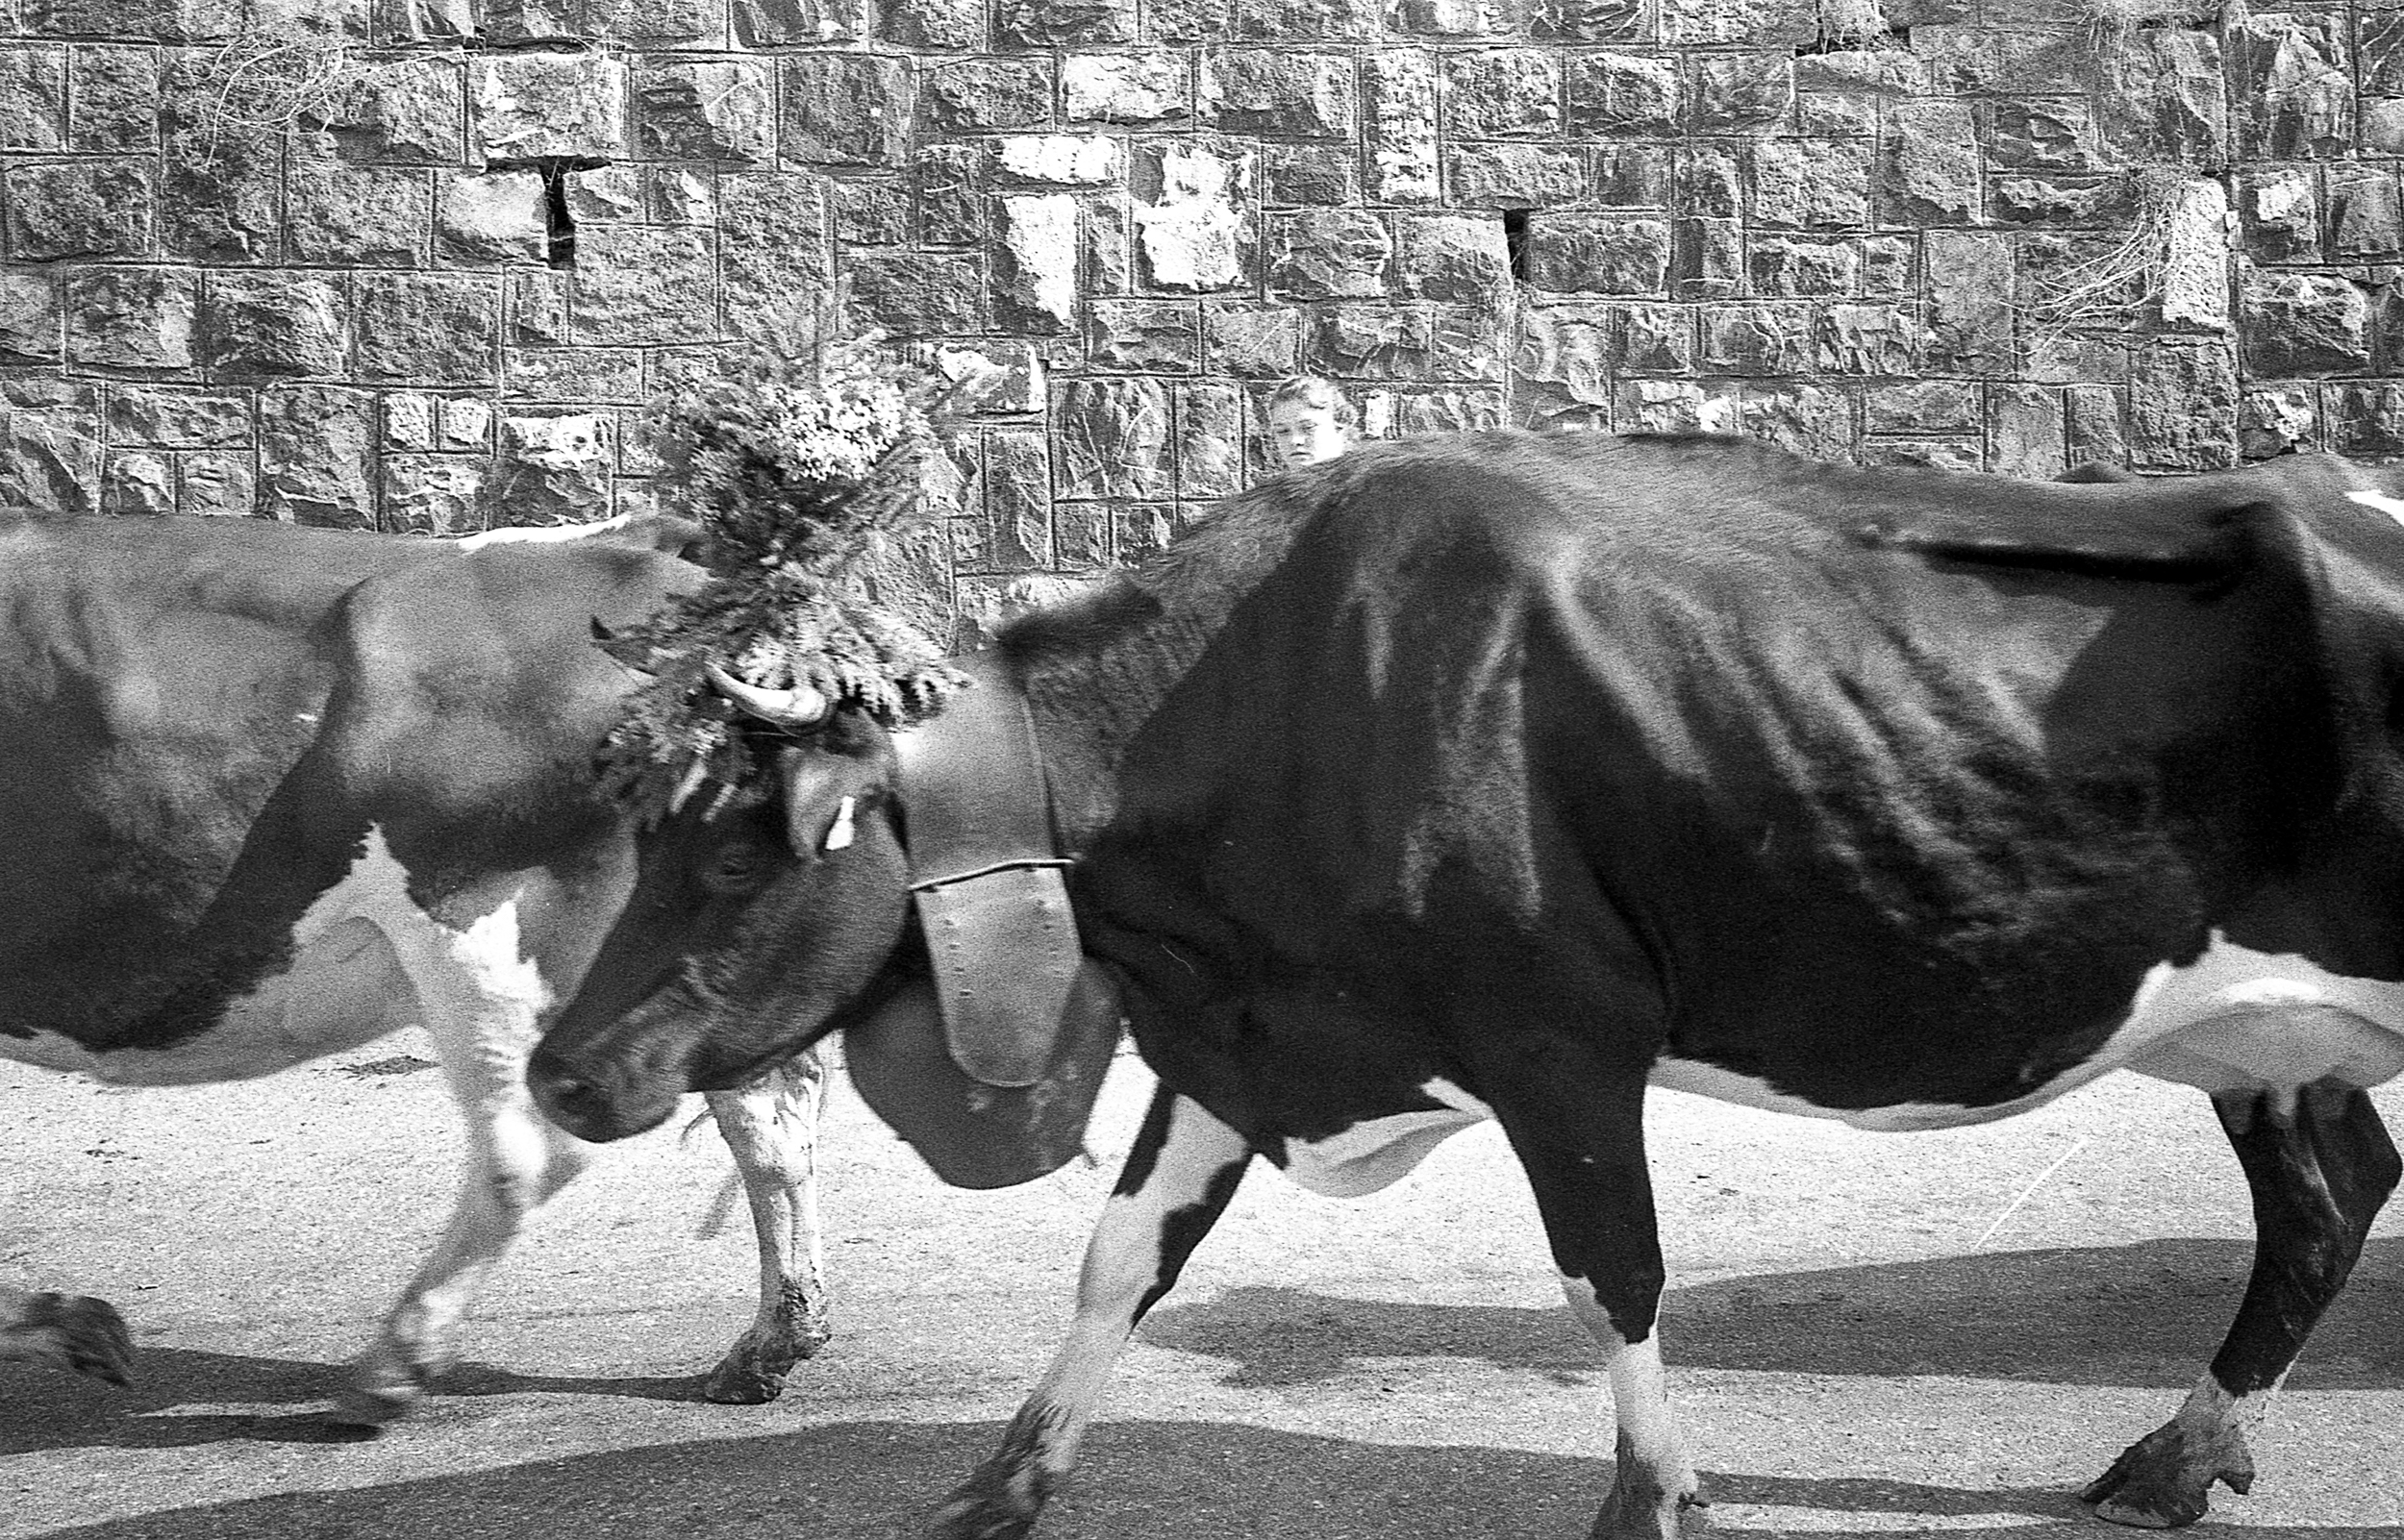 """A girl walks the """"Queen of the herd"""" down from the highlands during the Des Alpes festival. Des alpes is a celebration that happens when the cows descend from the alpine environment to the valley. Switzerland.  Film: Tri-X 400,"""